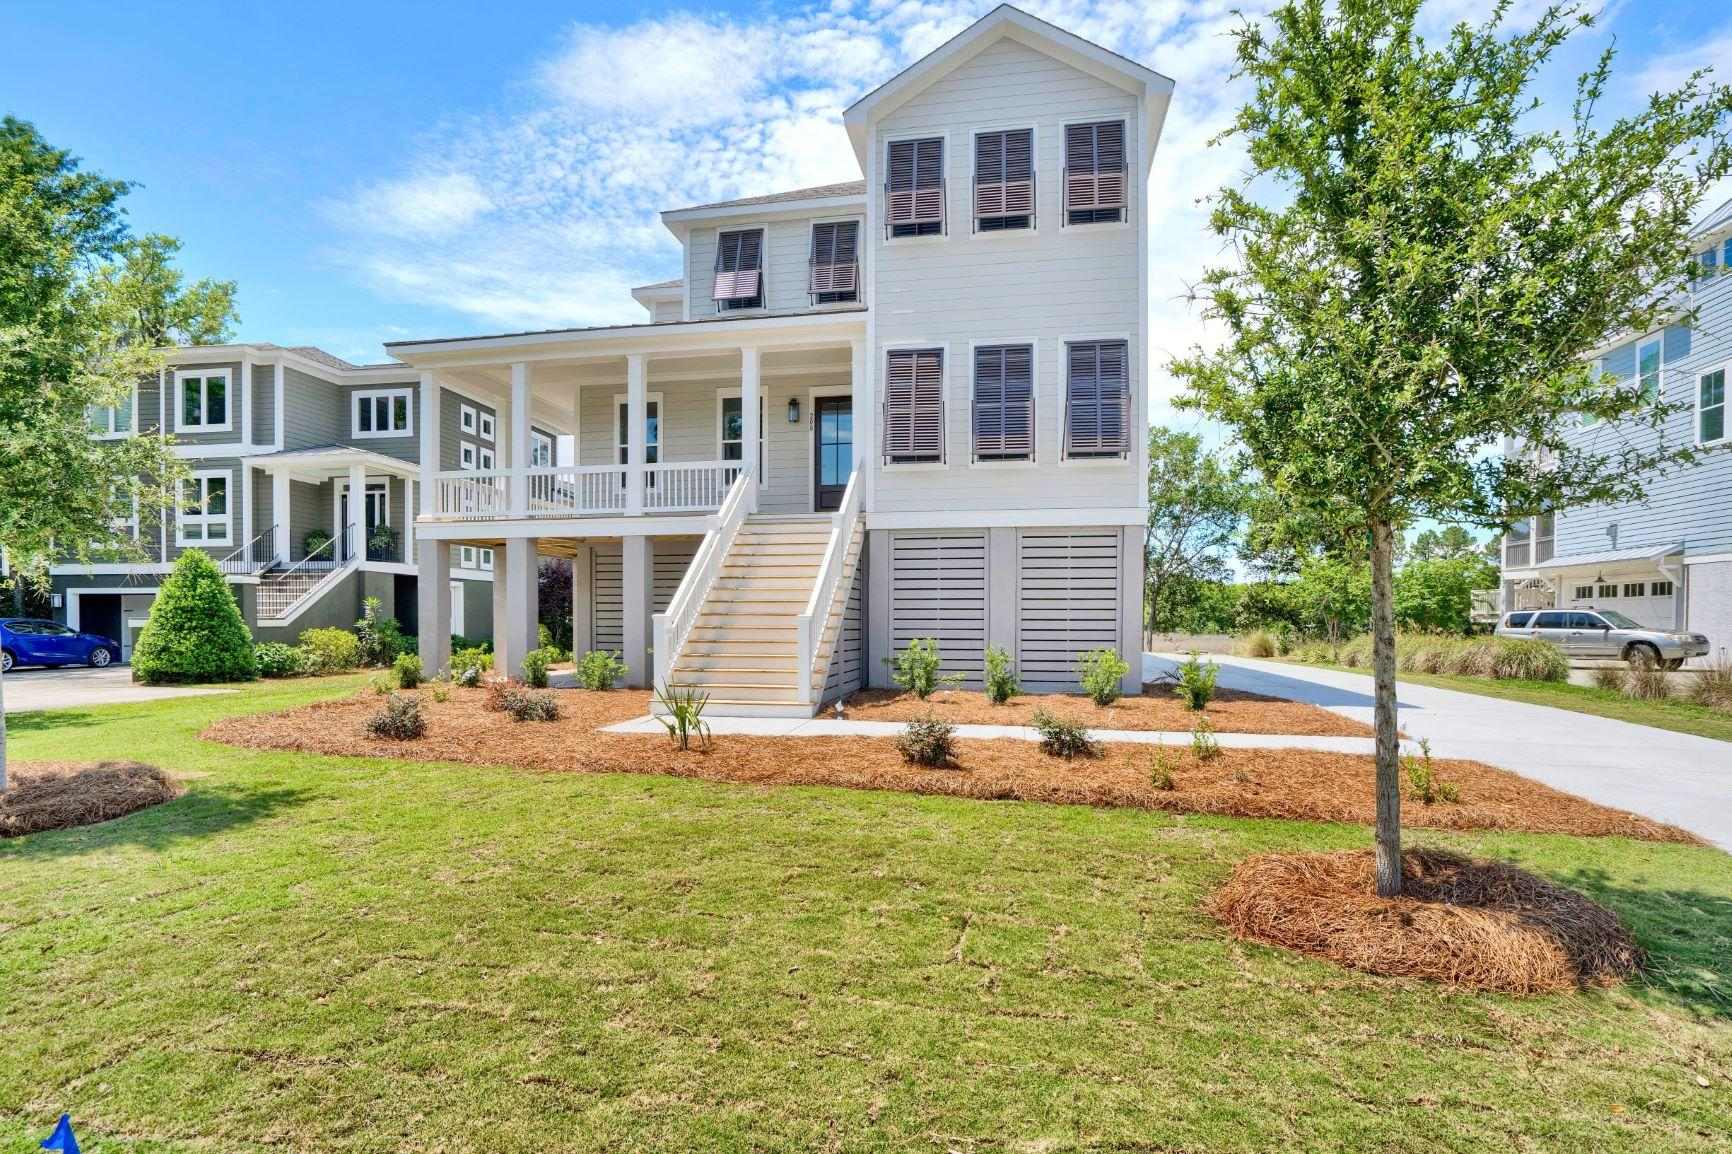 Rivertowne On The Wando Homes For Sale - 2223 Marsh, Mount Pleasant, SC - 5